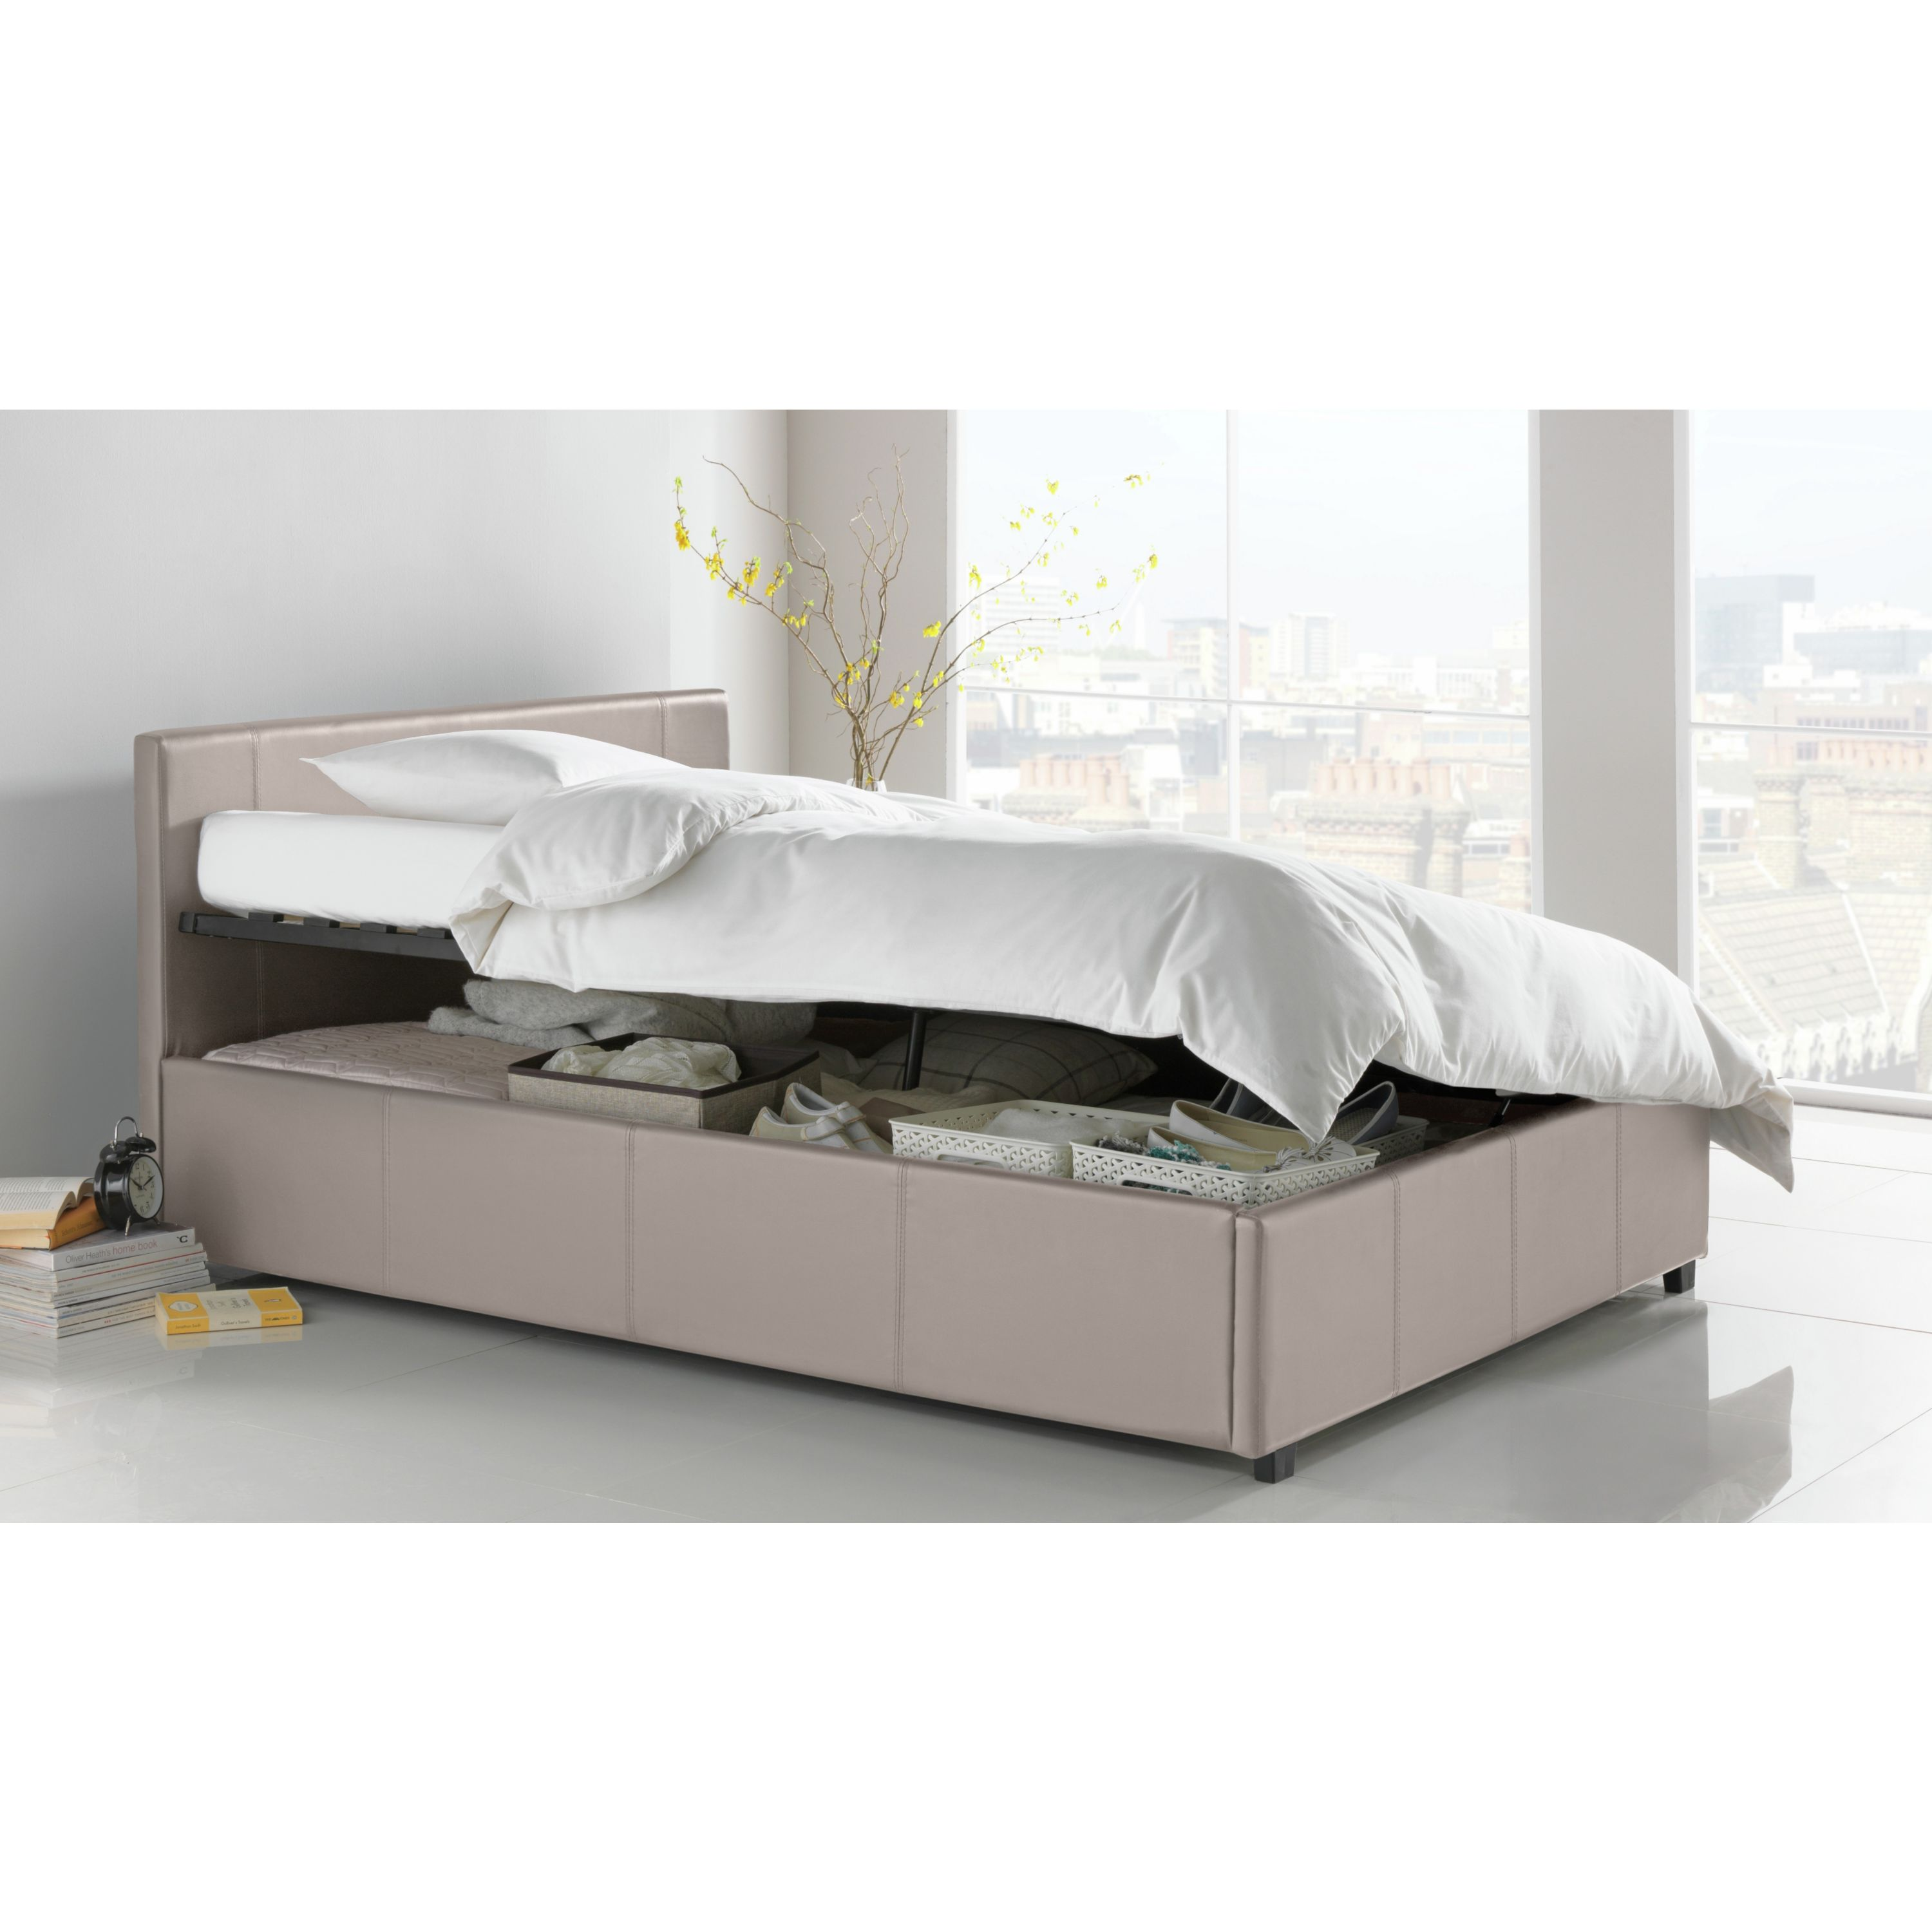 Hygena harcourt kingsize ottoman bed frame latte ebay Argos single divan beds